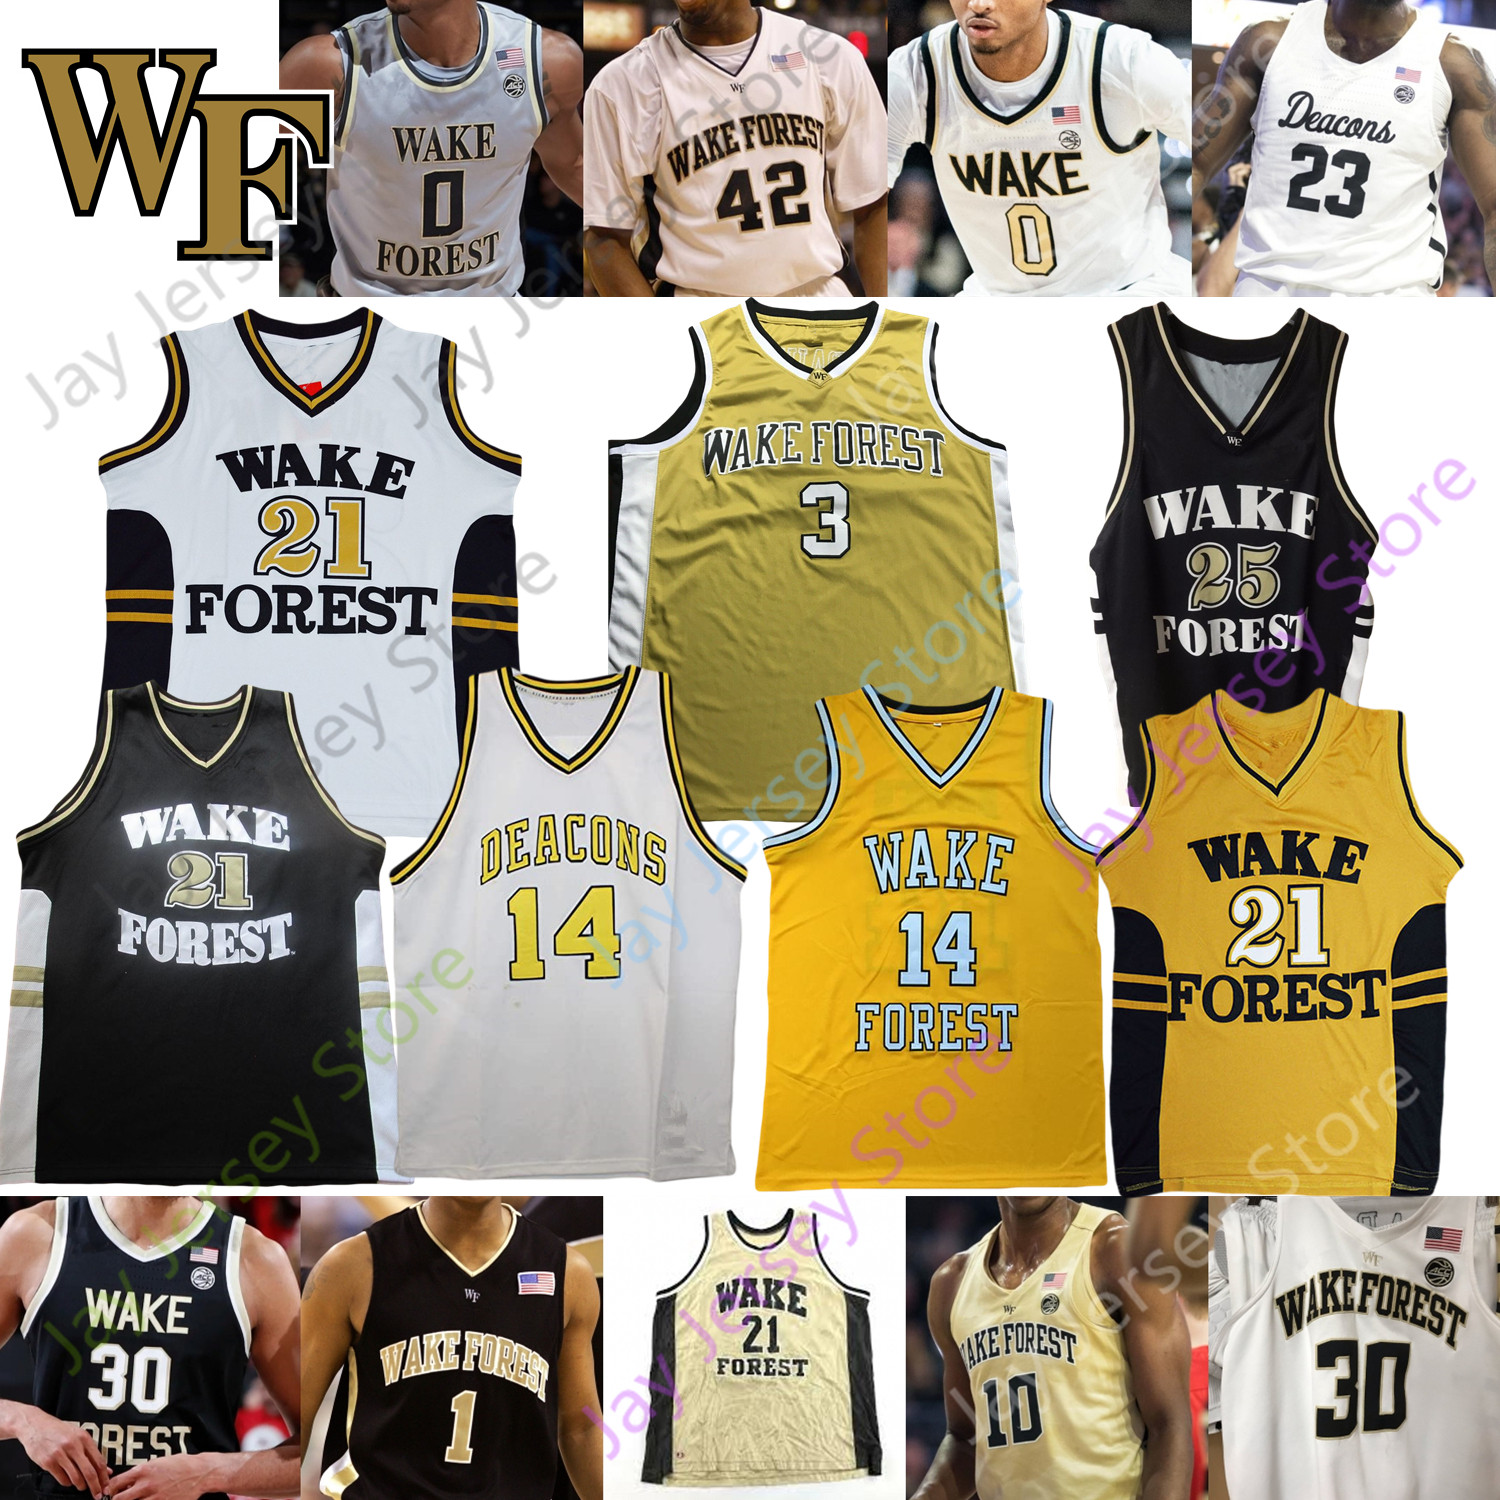 2020 Wake Forest Demon Deacons Basketball Jersey NCAA College Collins Chris Paul Jeff Teague Ish Smith Josh Howard Muggsy Bogues Tim Duncan